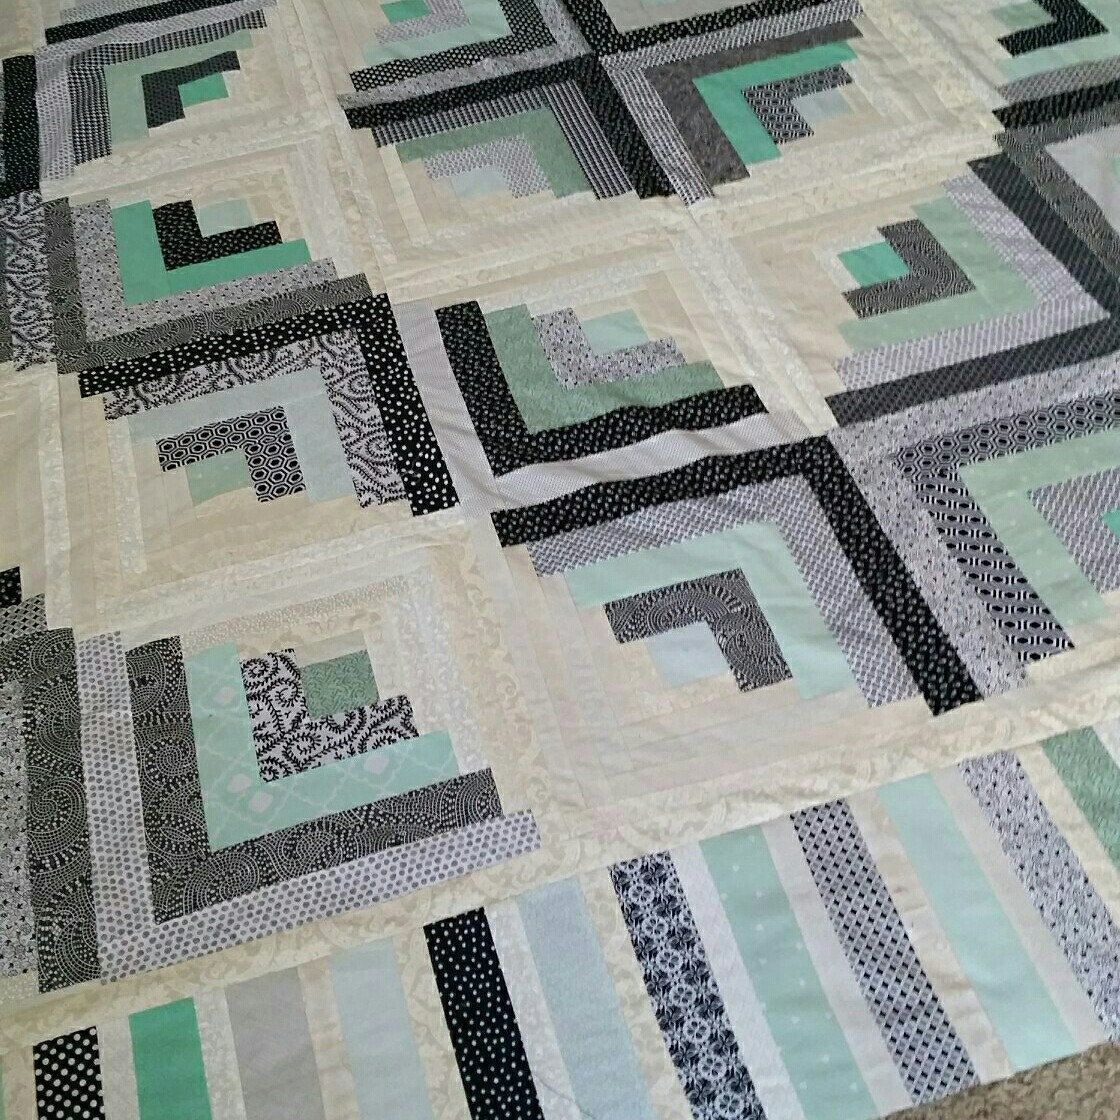 Handmade Quilt King, King Bedding, King Quilt, Homemade Queen ... : unique quilts for sale - Adamdwight.com